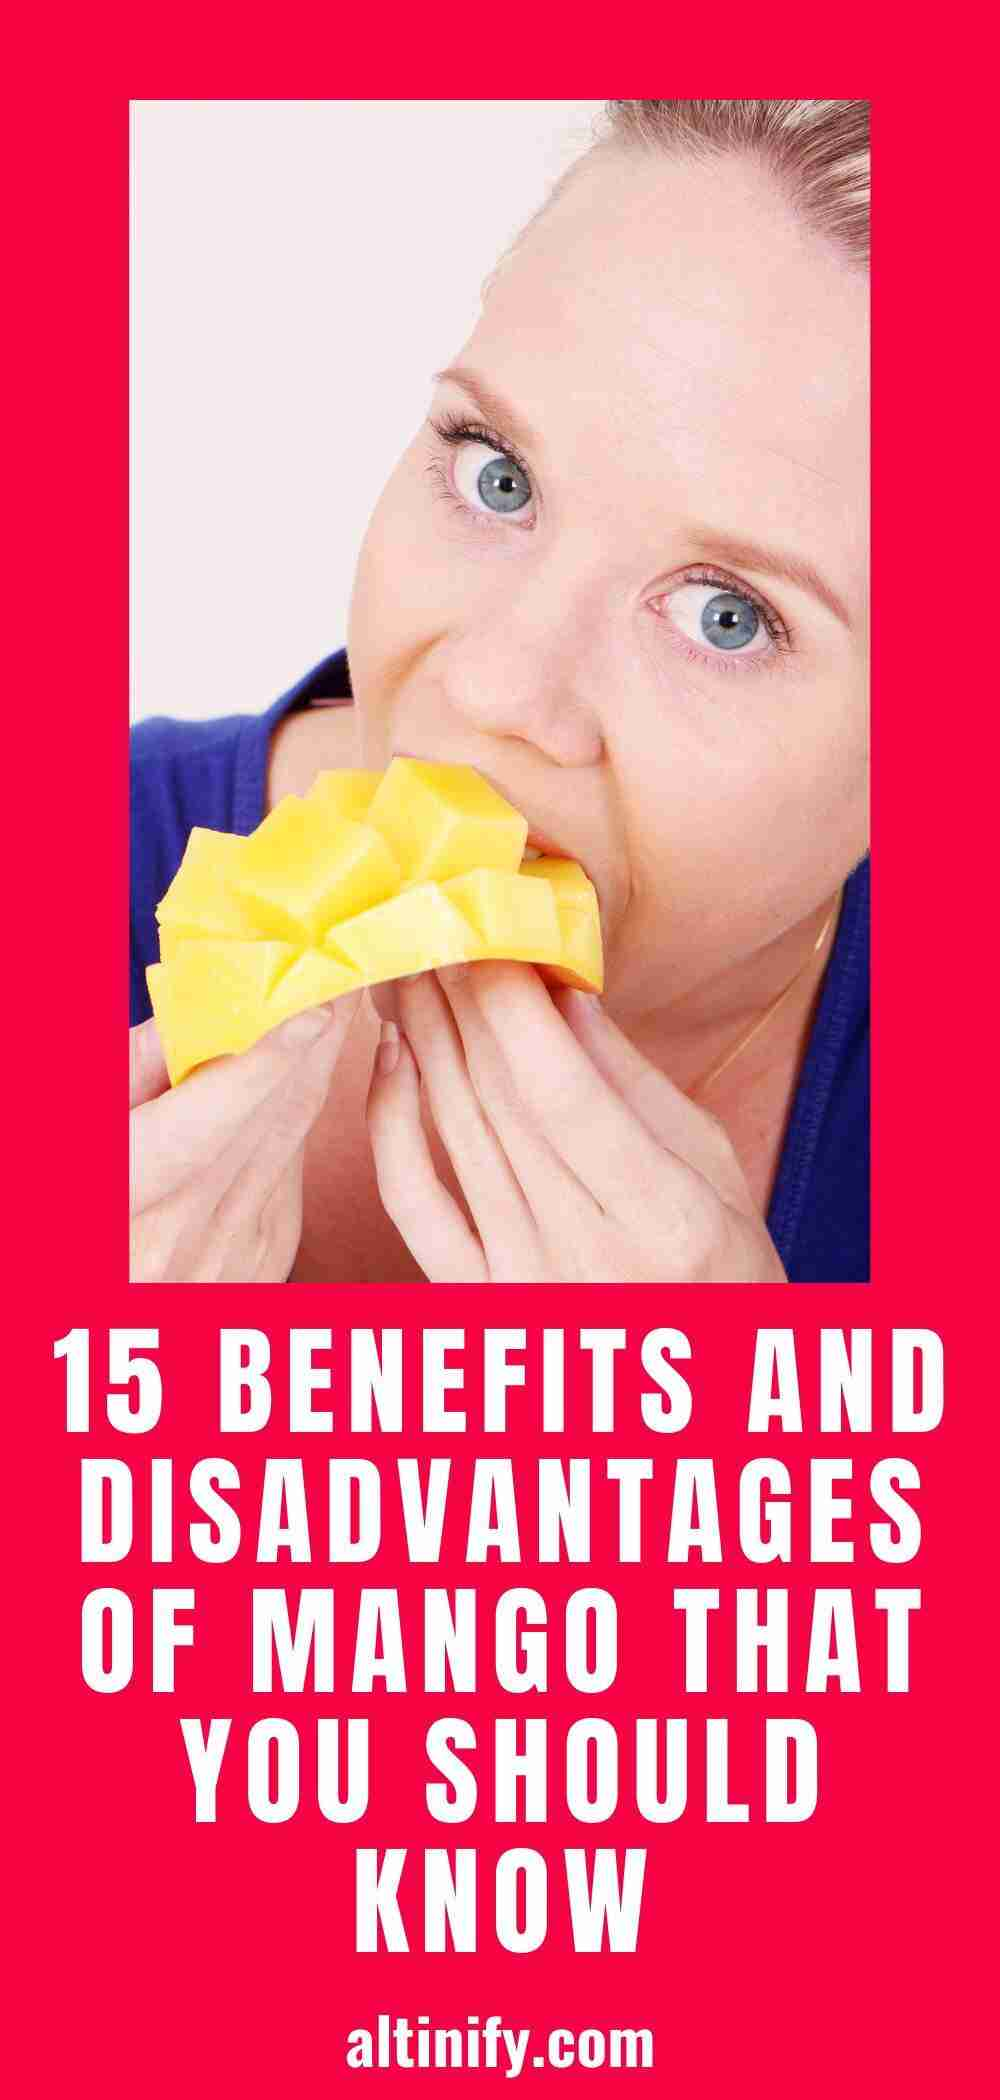 15 Benefits and Disadvantages of Mango That You Should Know